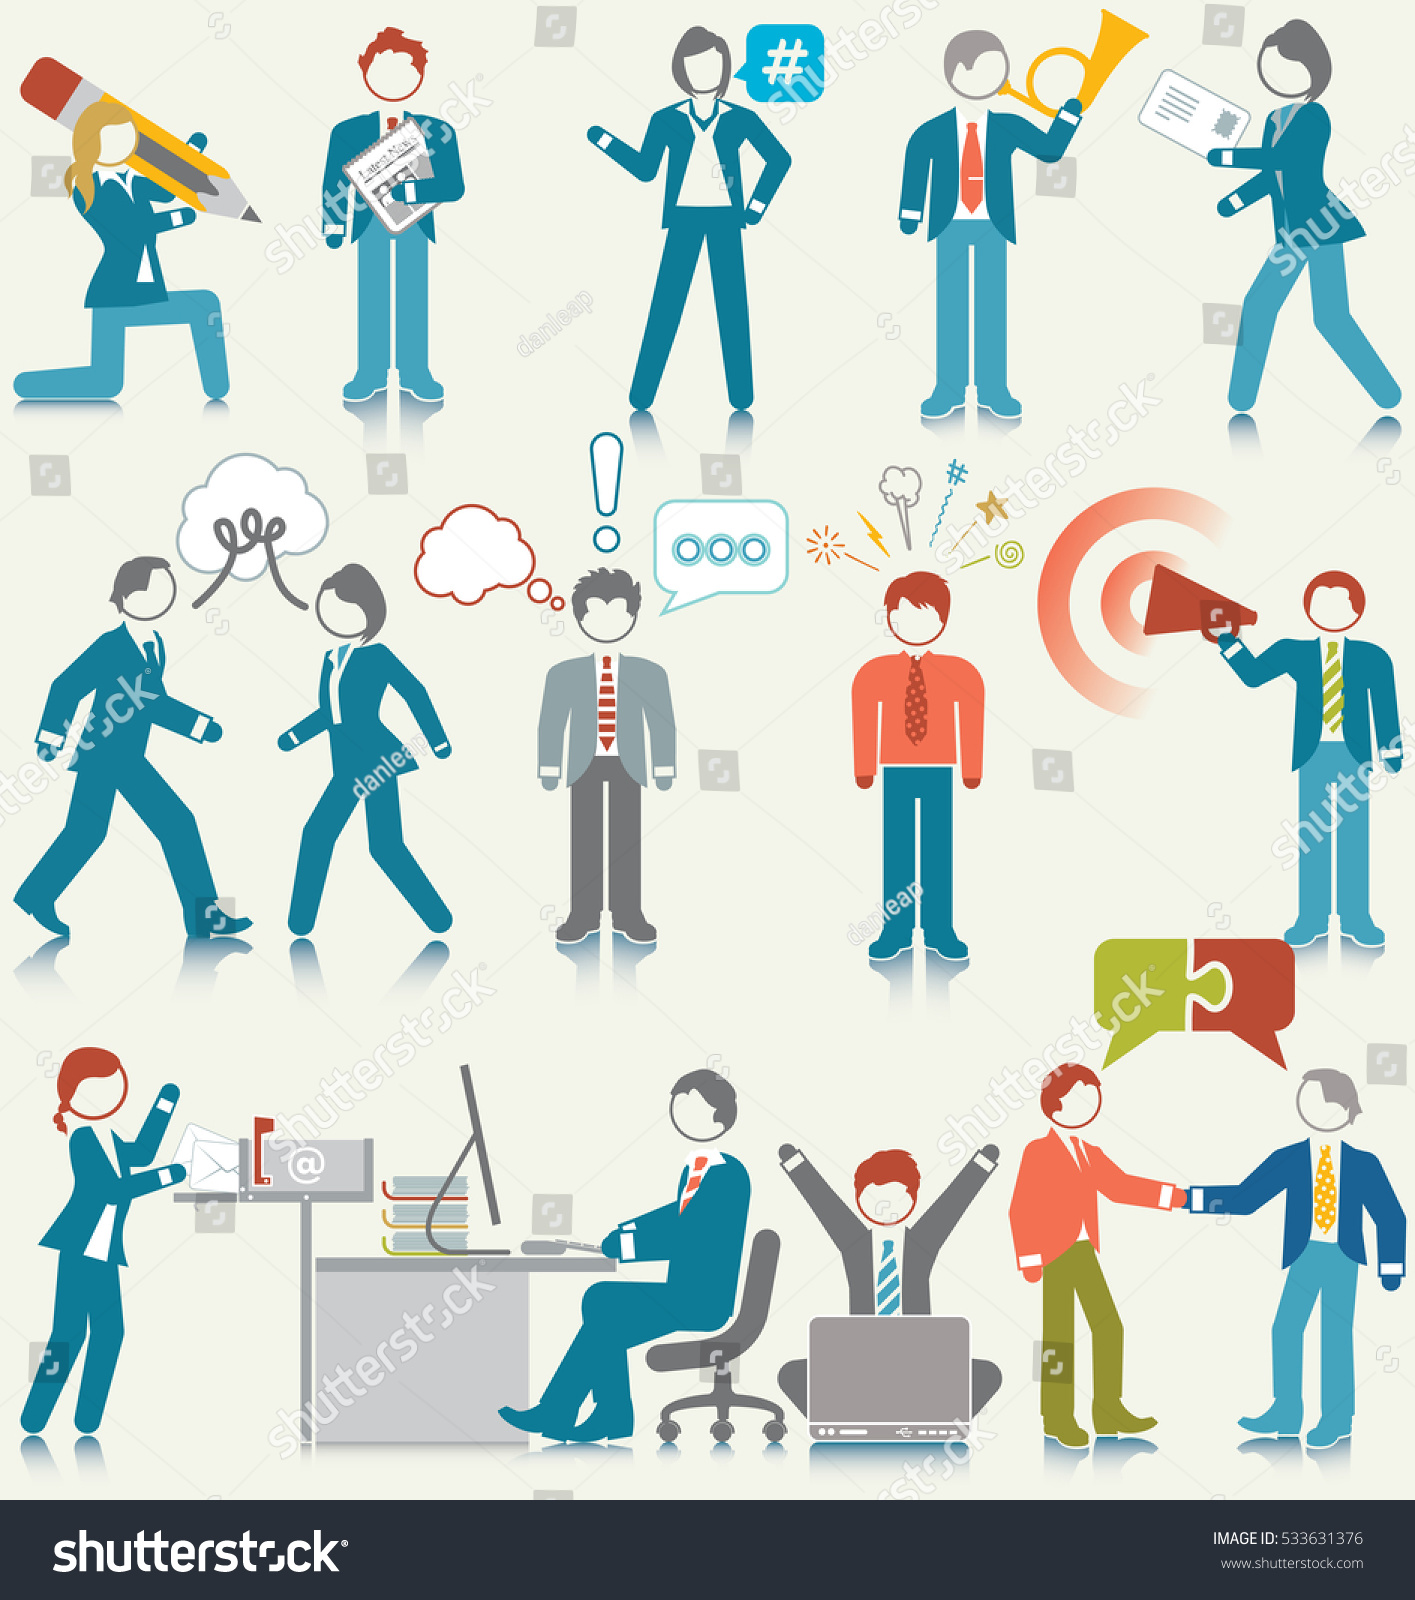 Business People Communication Activities Icon Set Stock